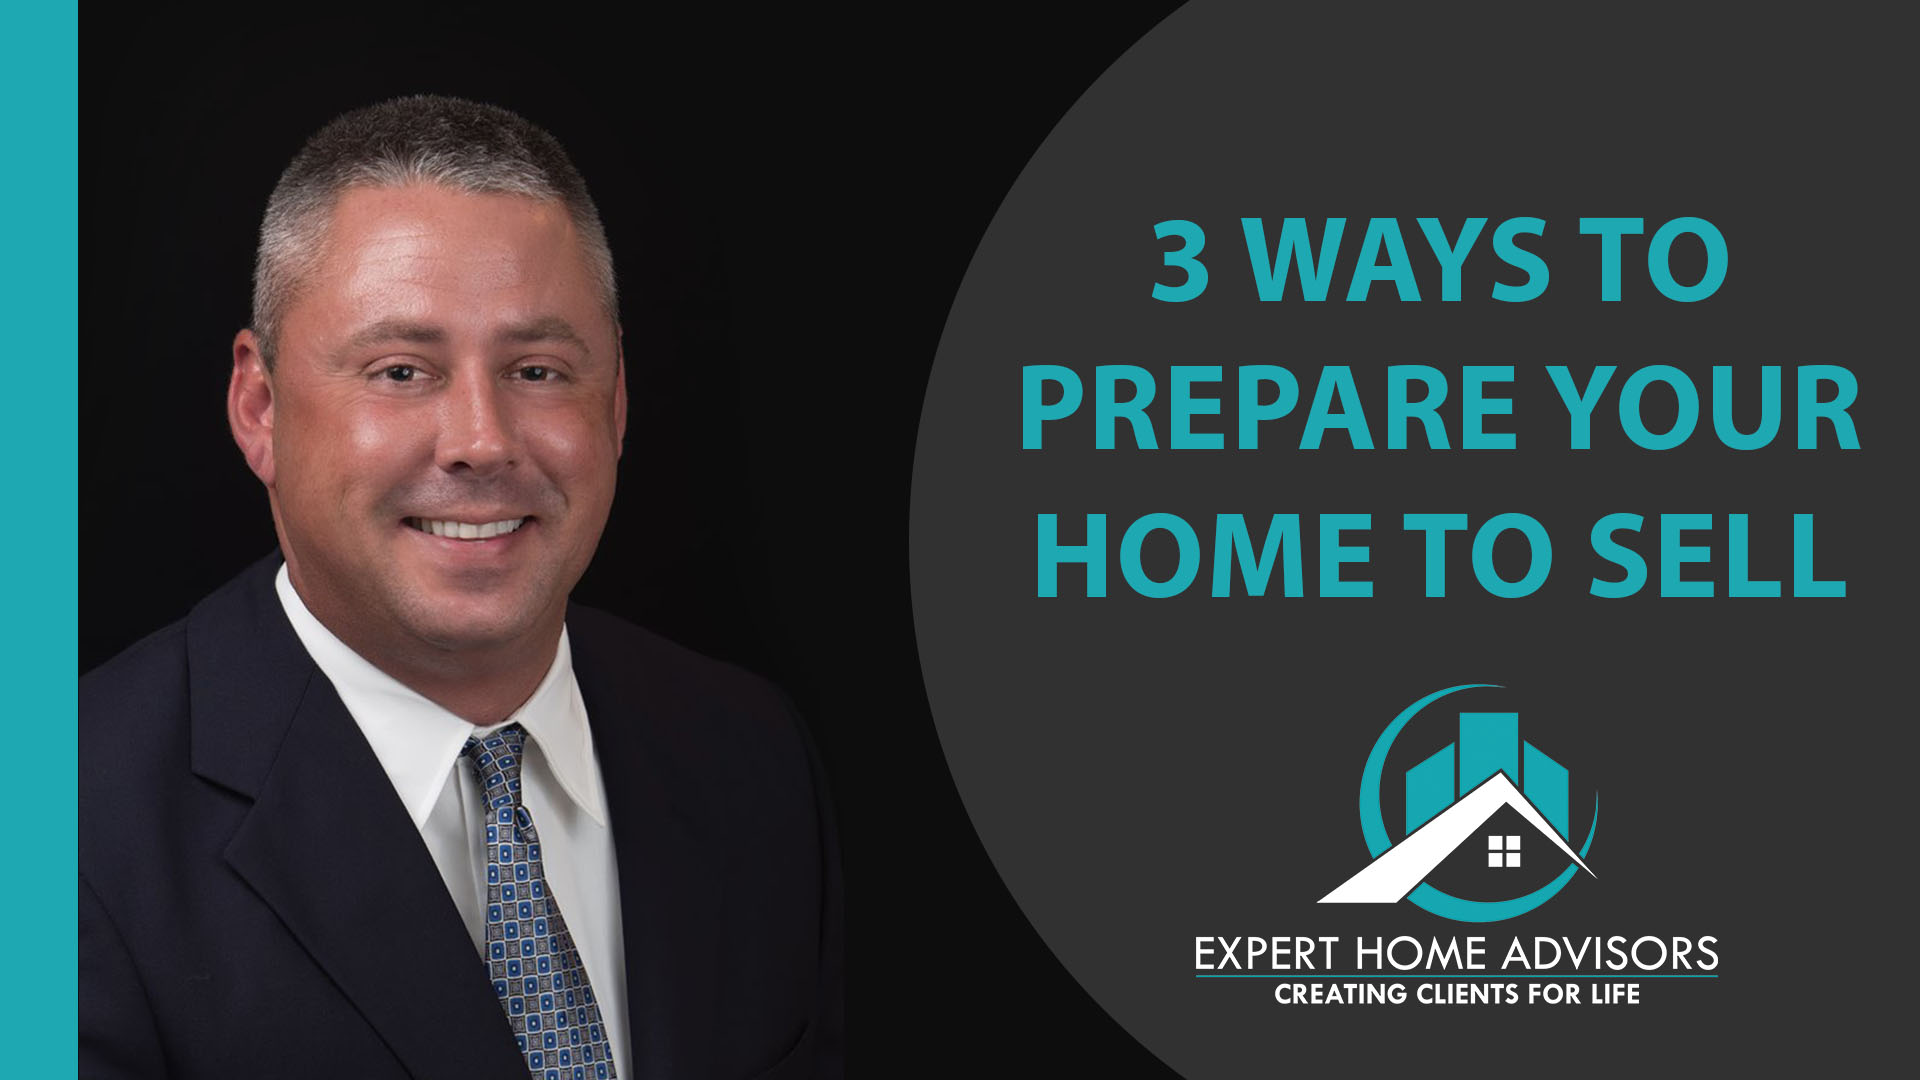 3 Tips to Make Your Home Shine Before You Sell